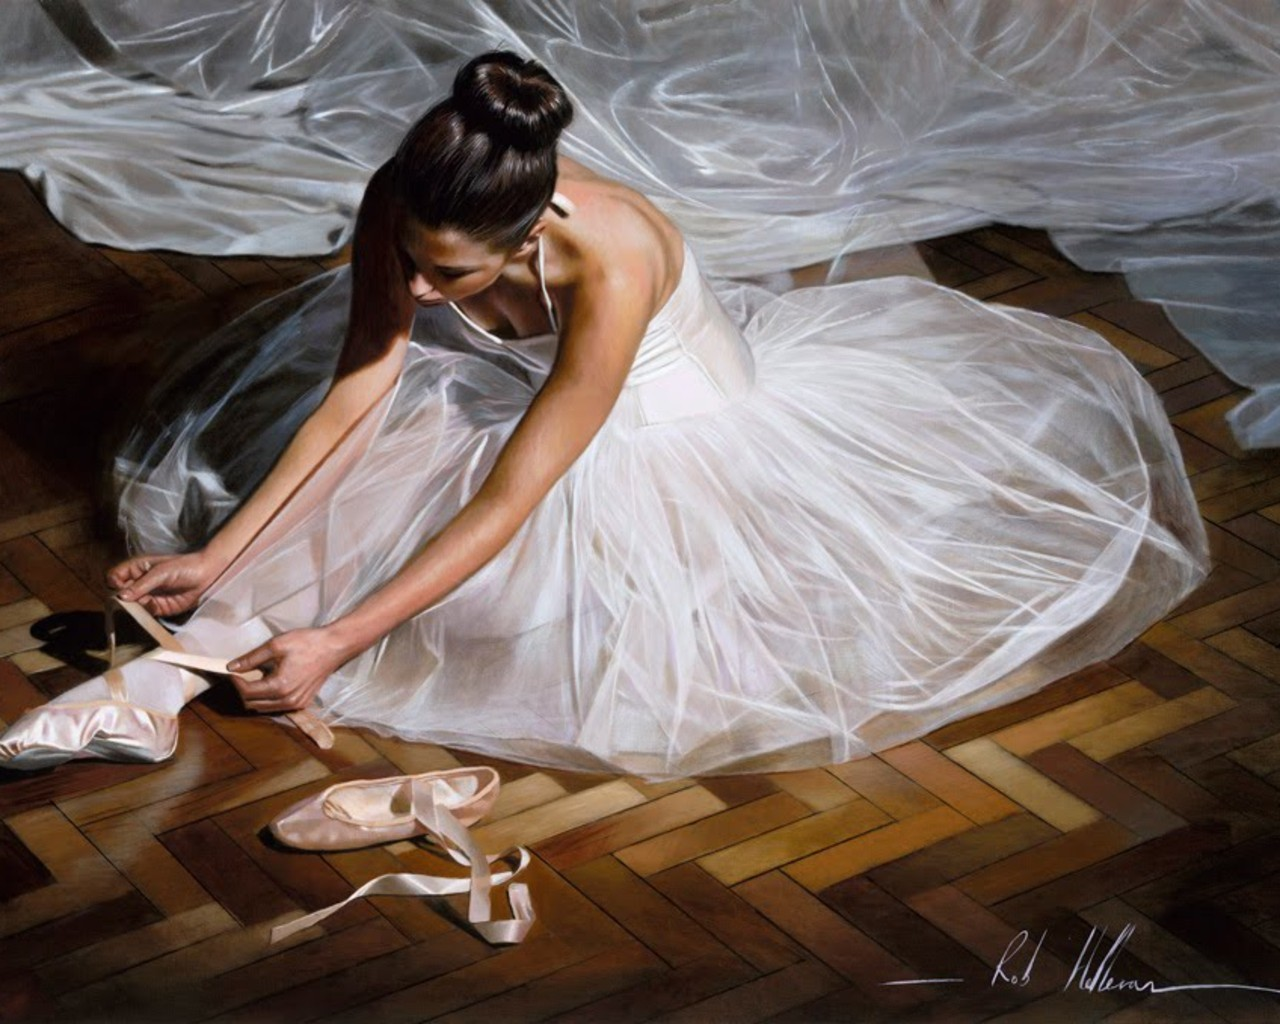 ballet dance ballet shoes HD Wallpaper